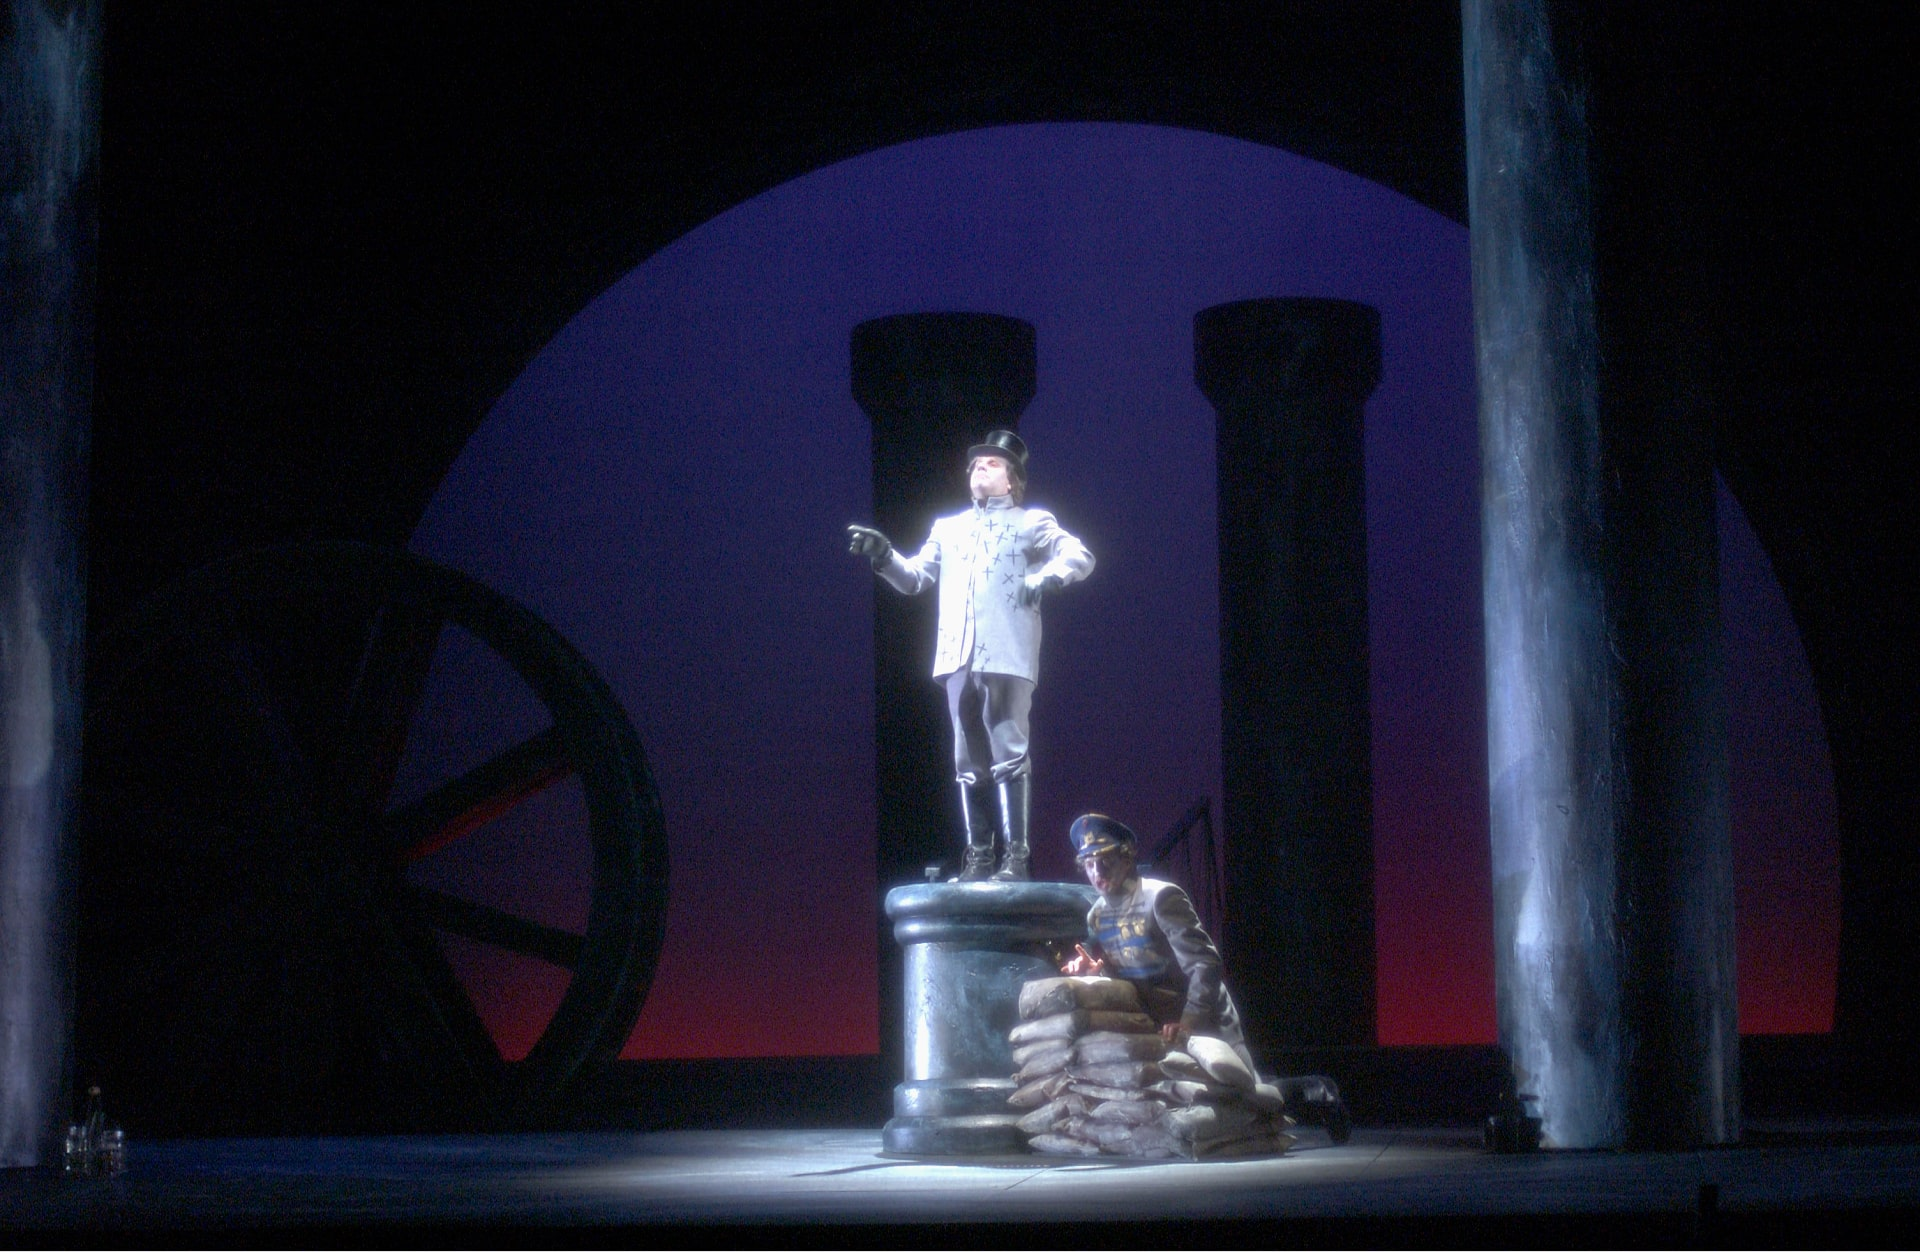 Man in top hat stands on pedestal with soldier crouching on sandbags below, surrounded by columns and backlit by lavender sunrise.